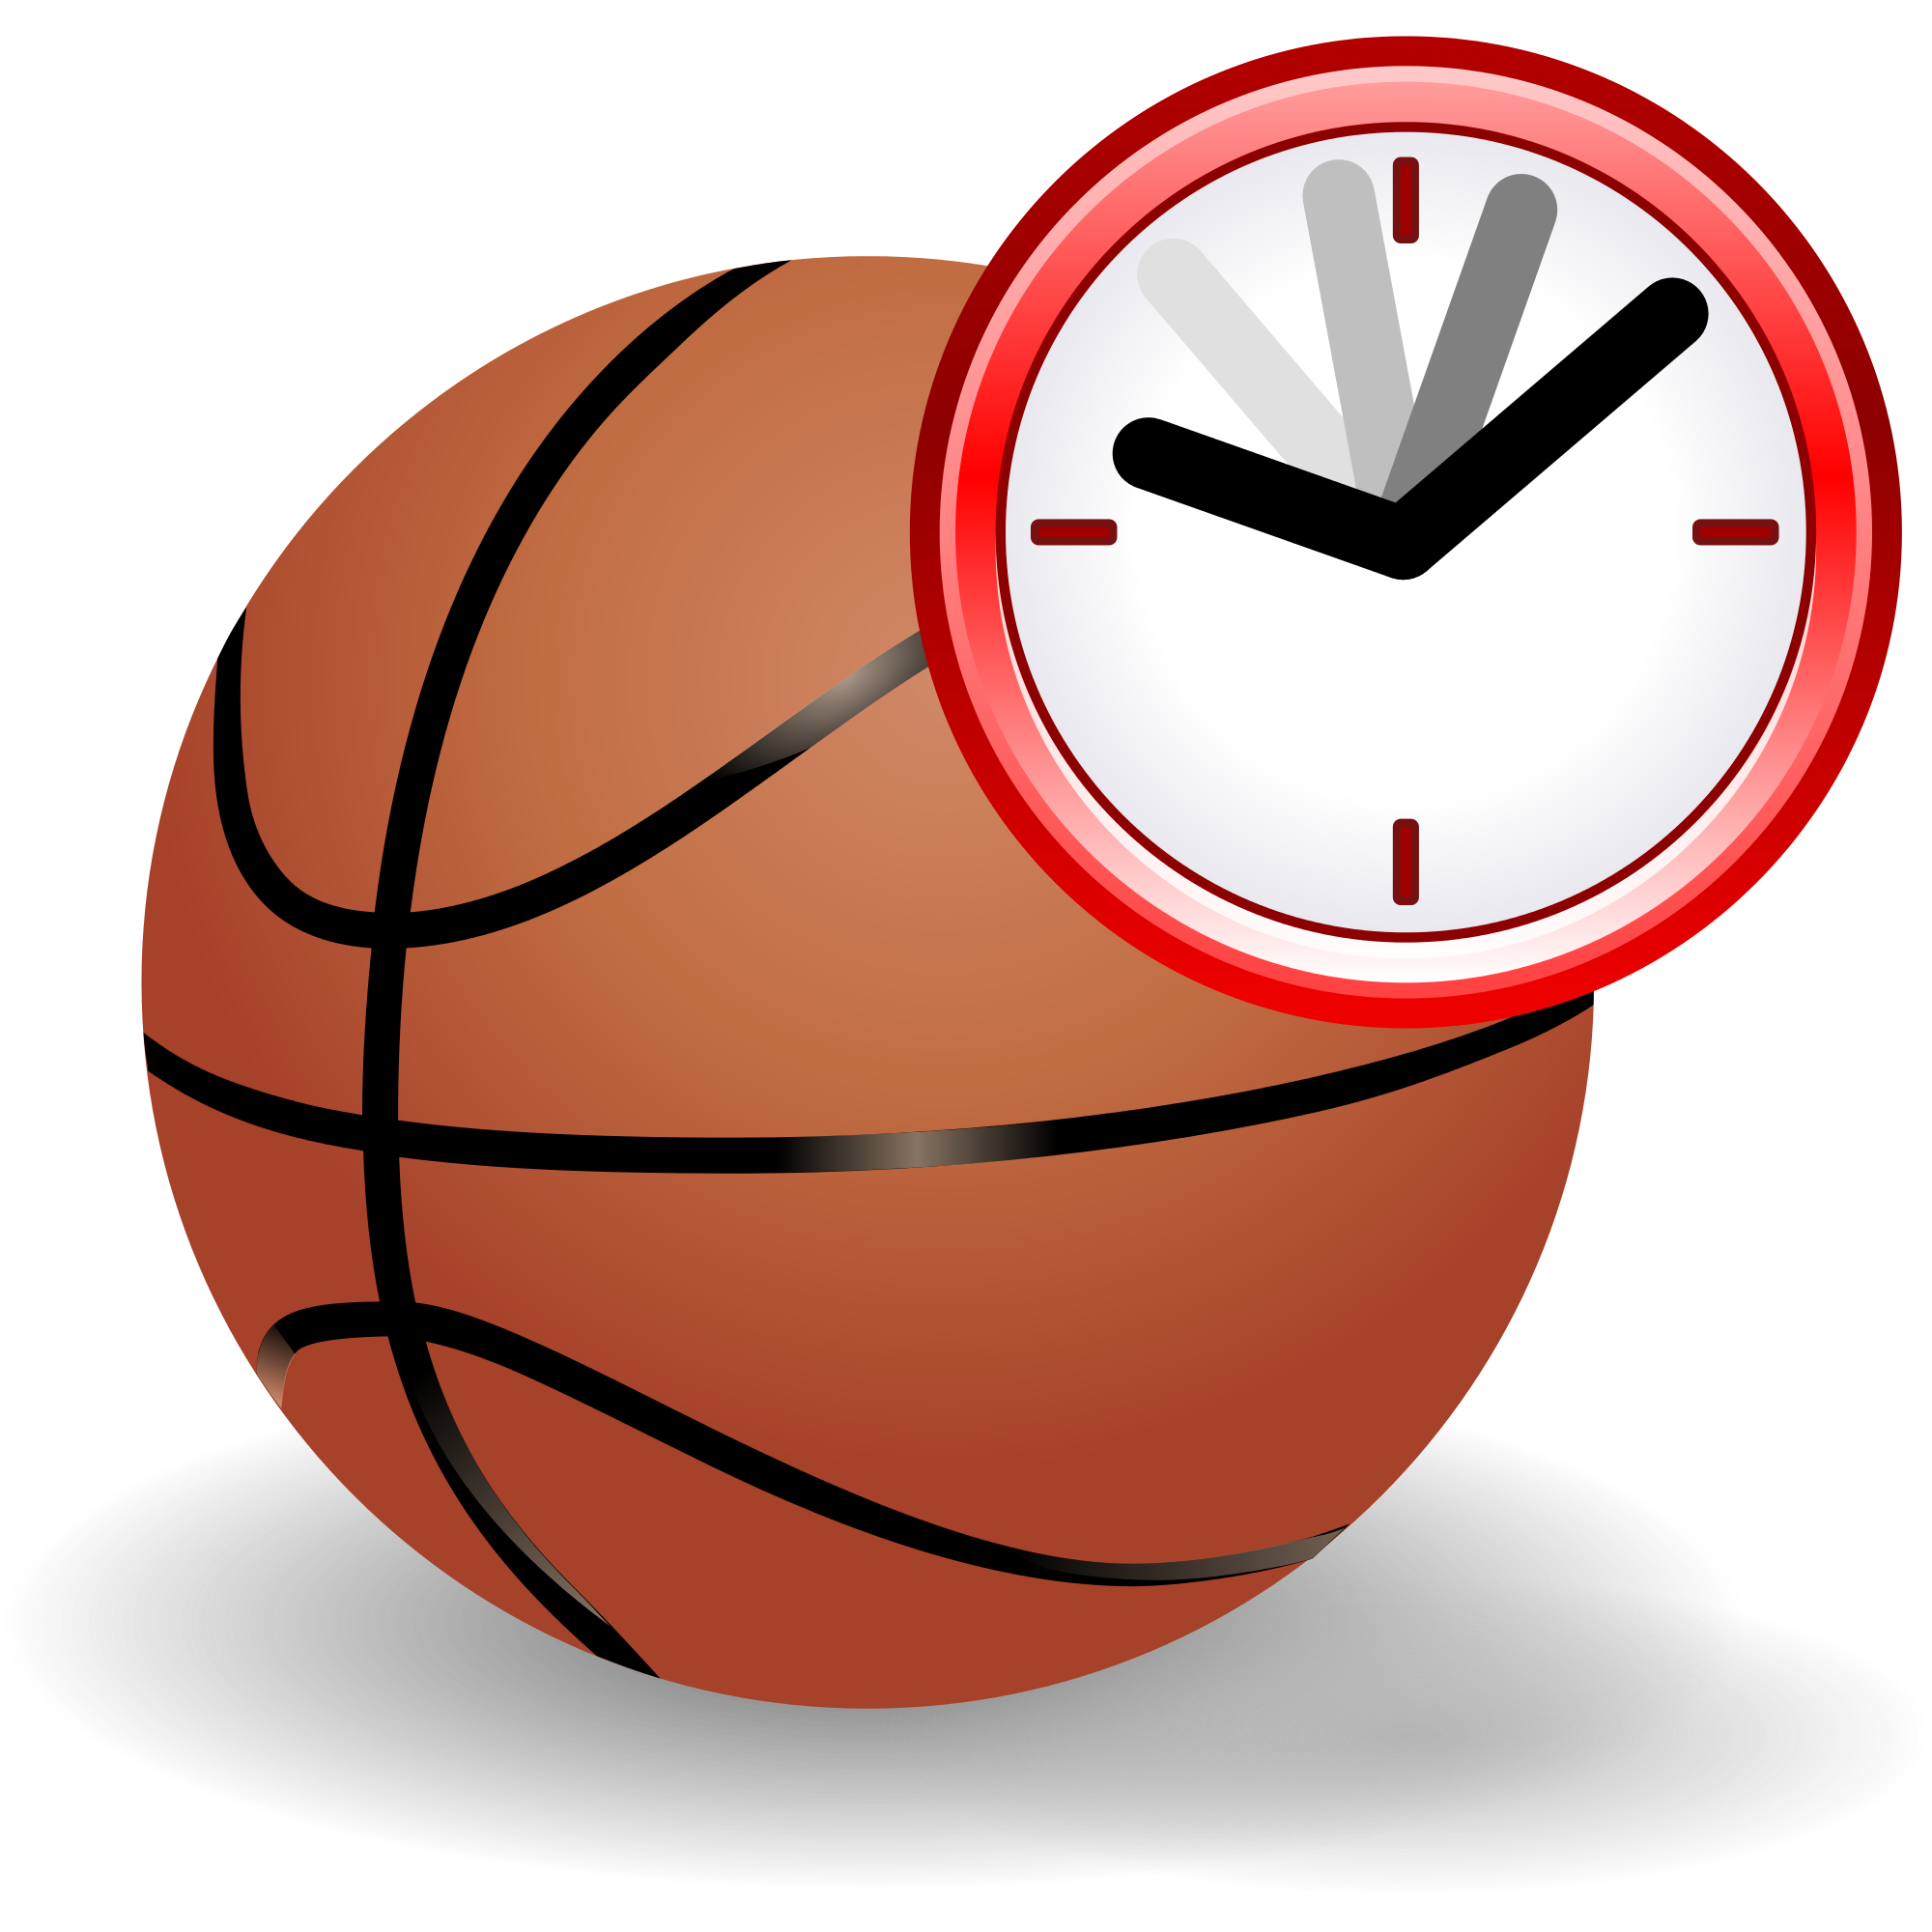 Piston basketball clipart image royalty free download File:Basketball current event.svg - Wikimedia Commons image royalty free download